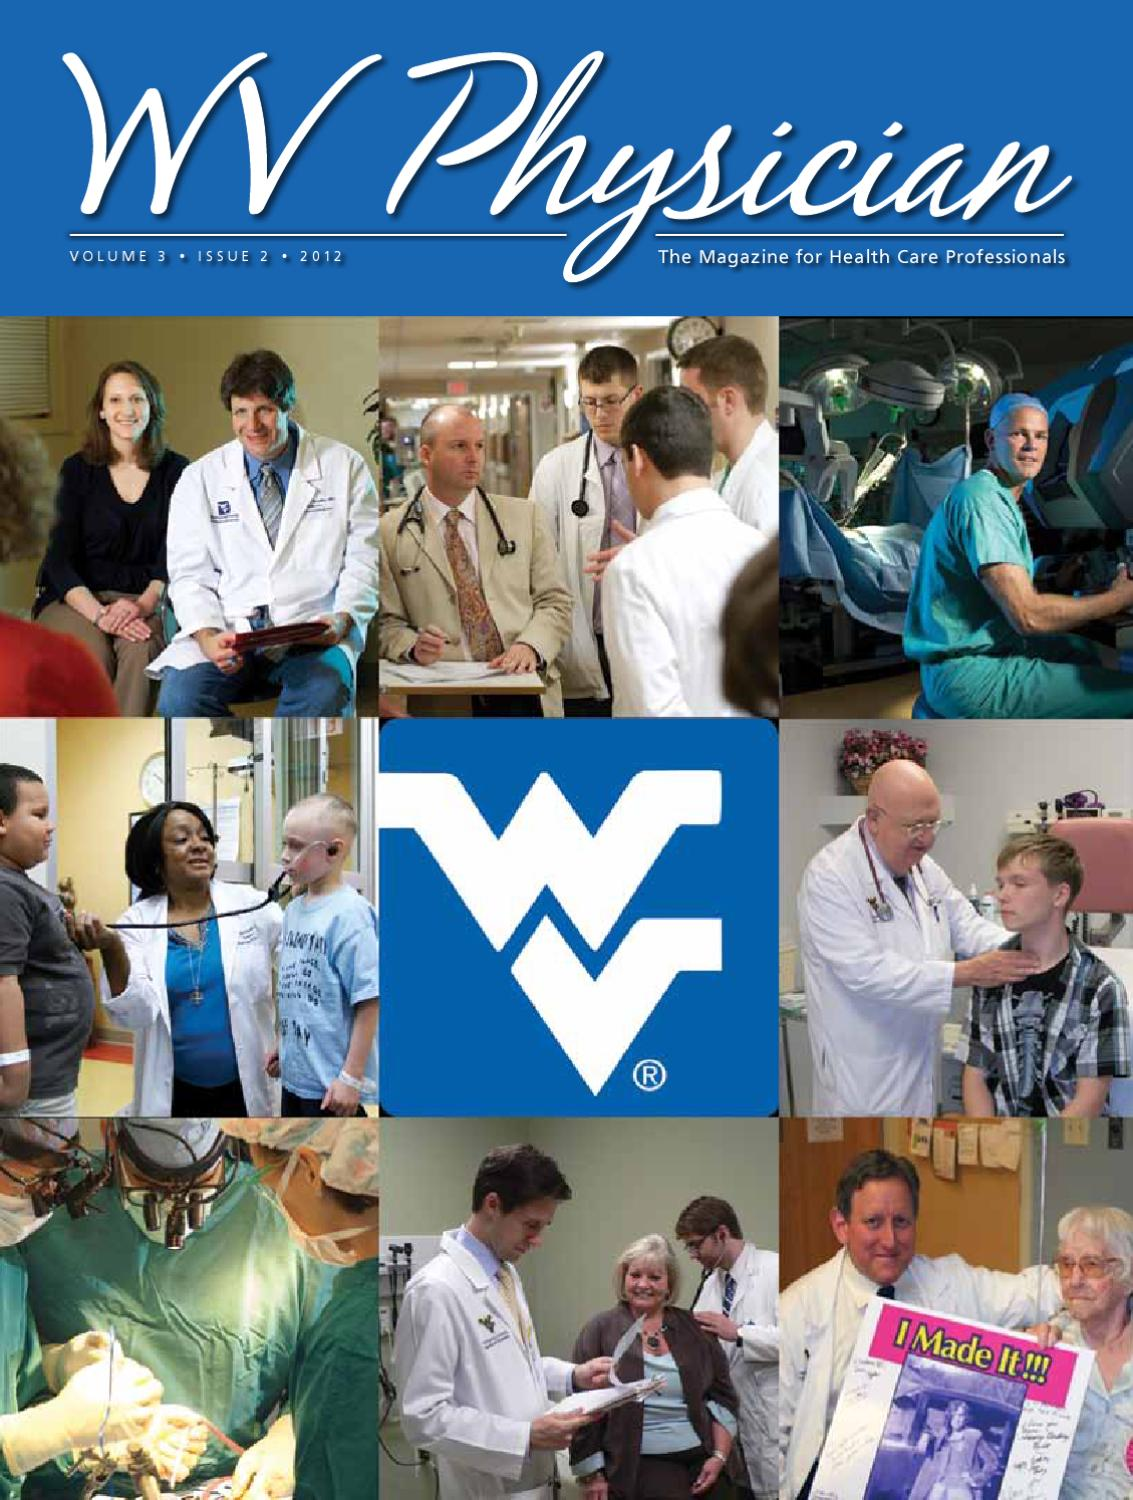 hospital for special surgery spring horizon by hospital for wv physician magazine volume 3 issue 2